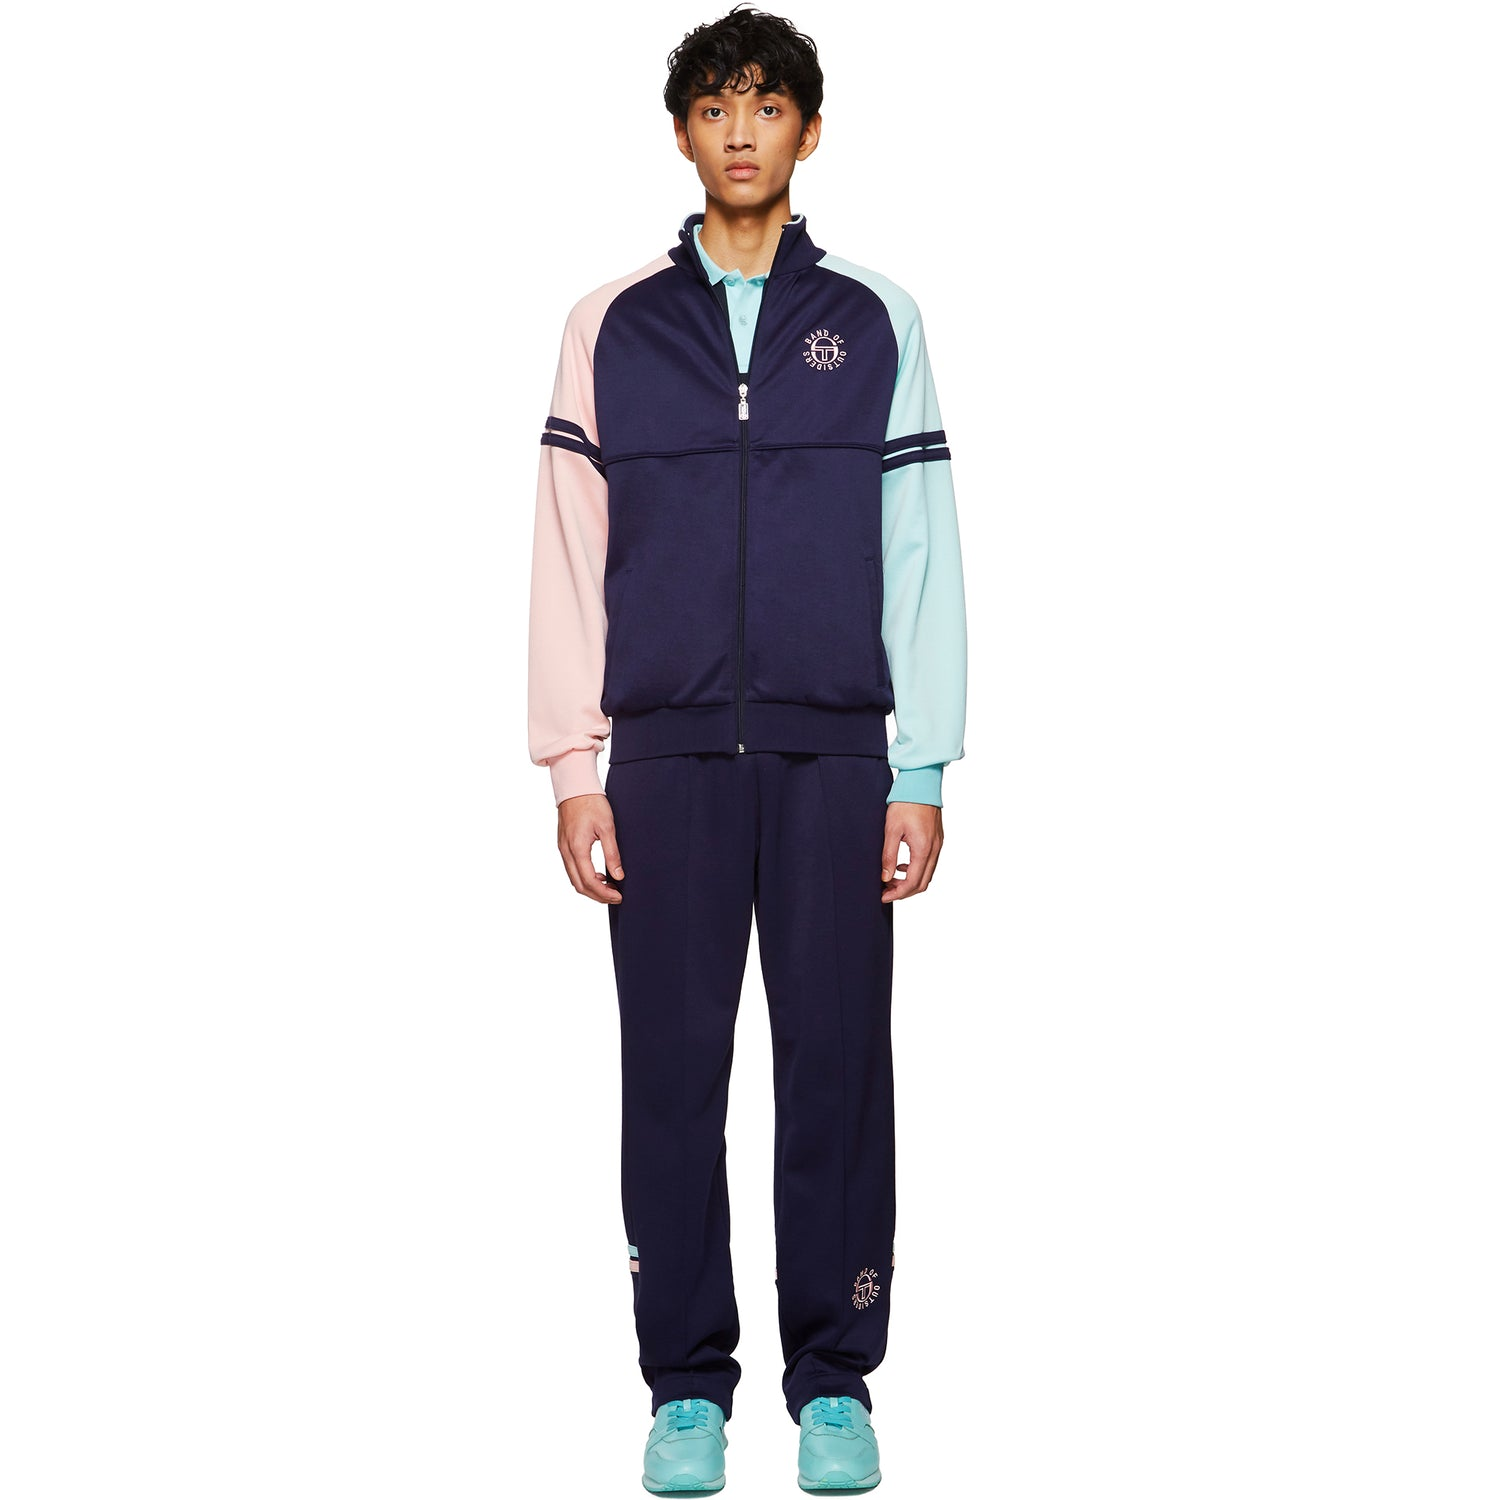 SERGIO TACCHINI X BAND OF OUTSIDERS TRACKSUIT NAVY